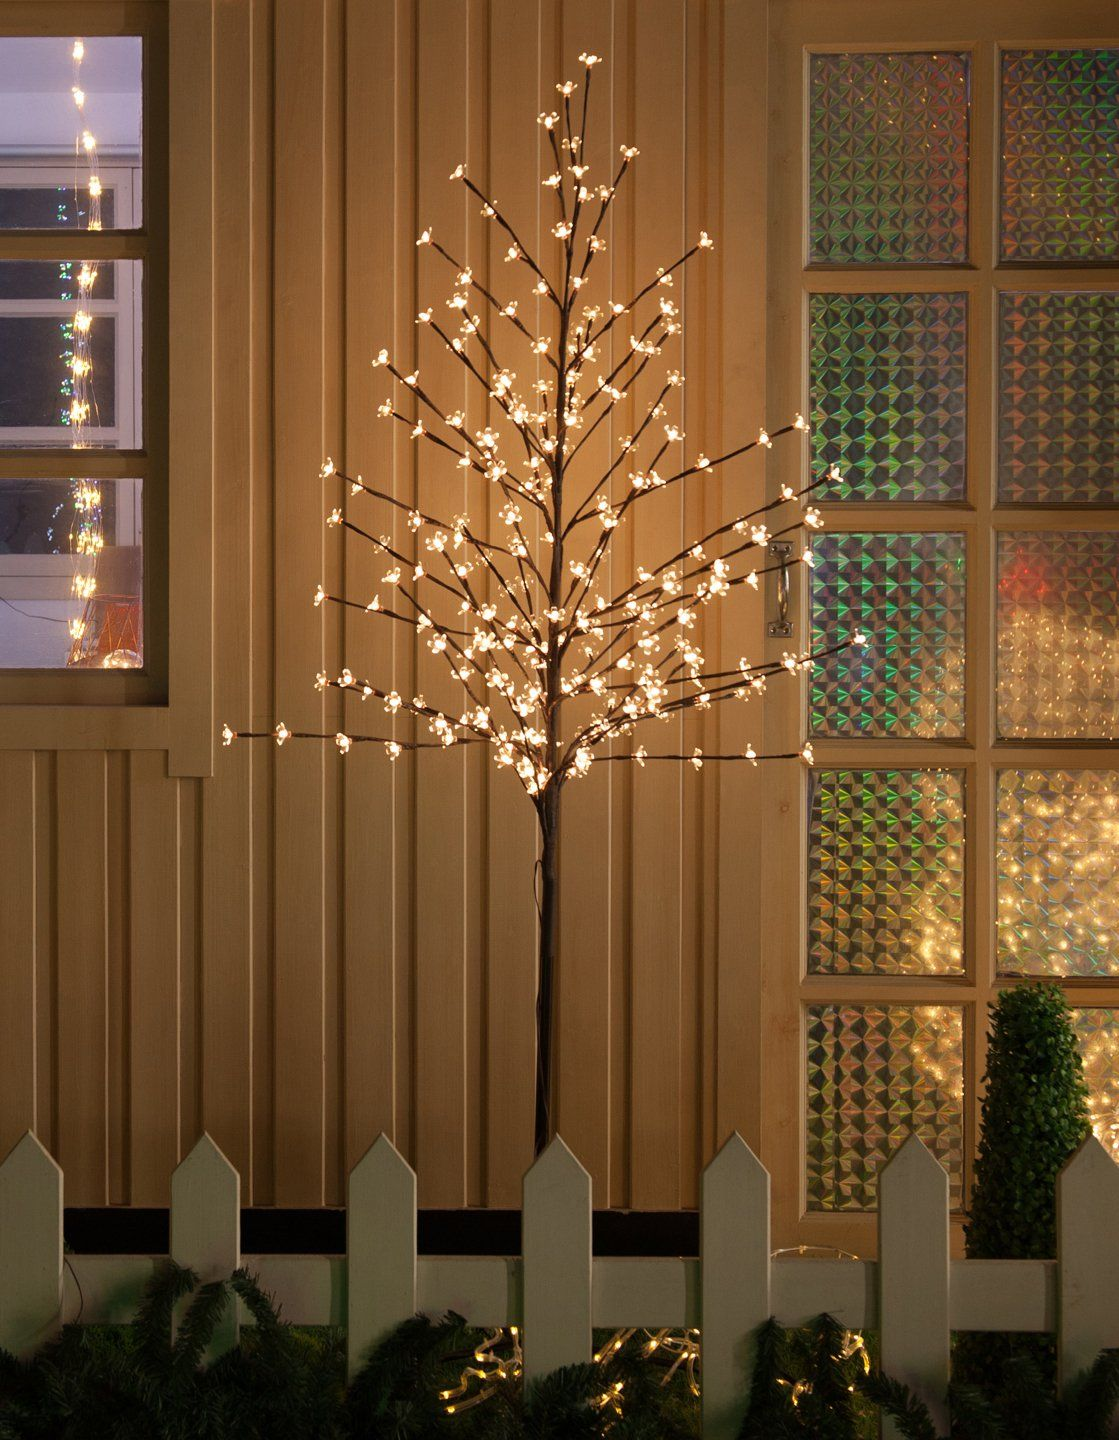 Amazon 6 Feet 208 Led Cherry Blossom Tree Lights With Flexible Branches Indoor And Outdoor Decoration Warm White Lights For 18 W Code Deals Finders Outdoor Decor Cherry Blossom Tree Tree Lighting